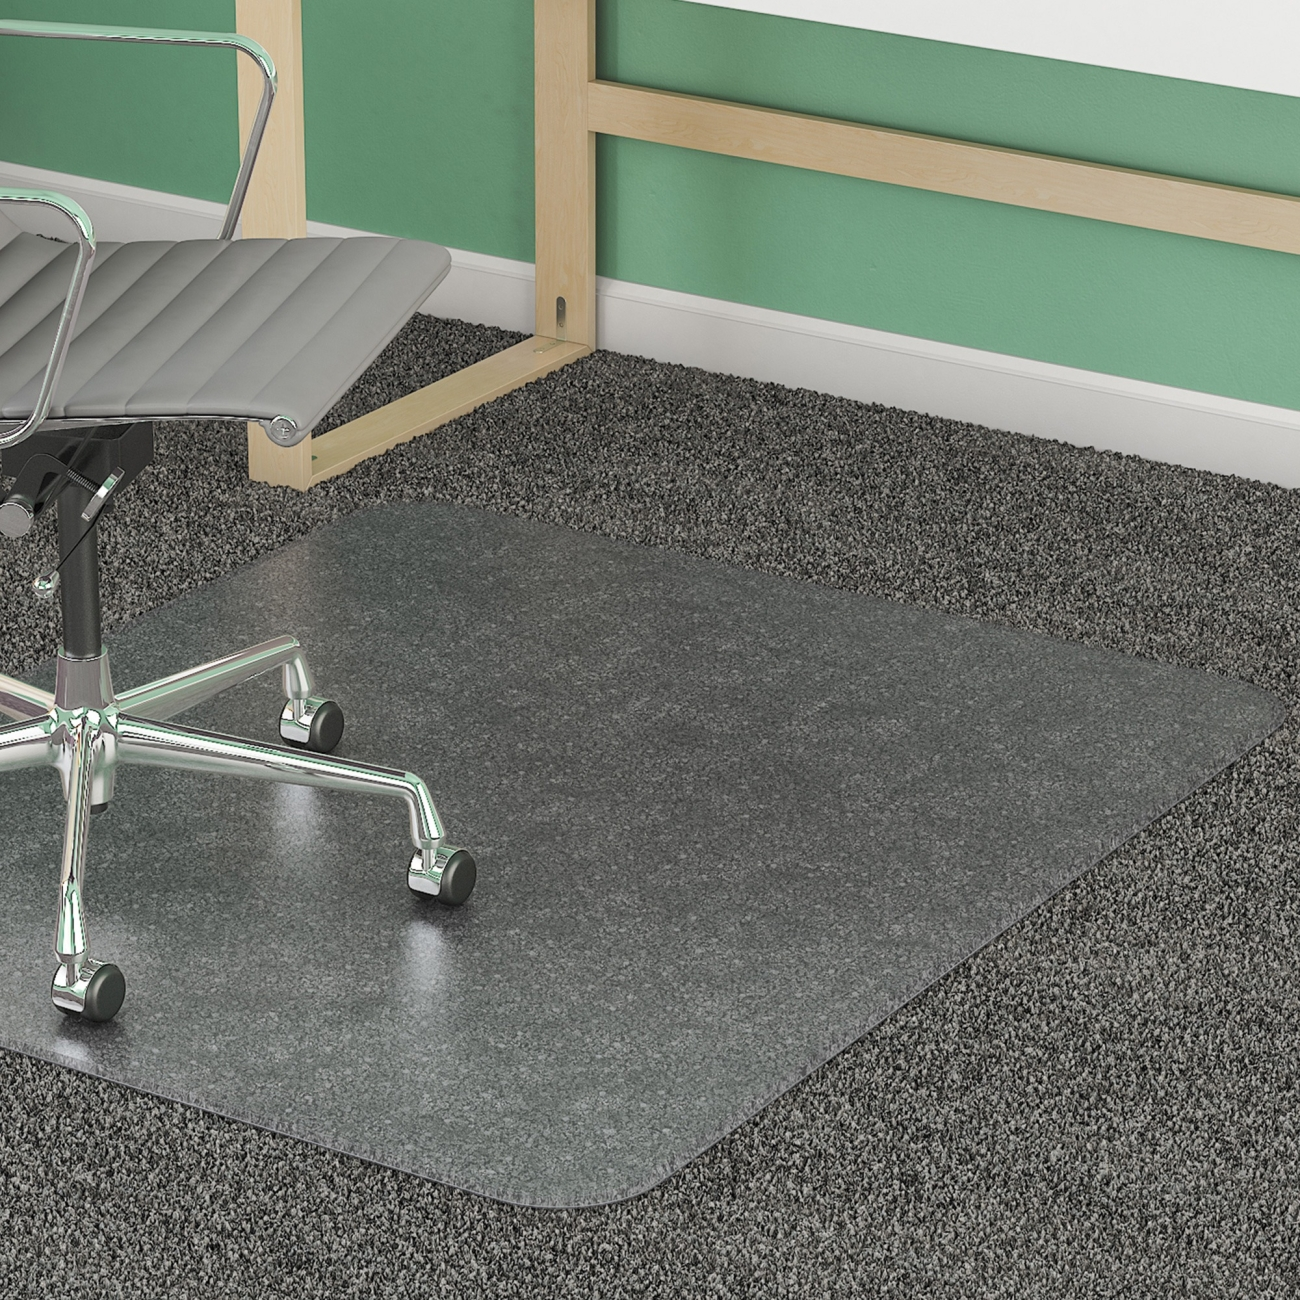 Anchormat 250 Best Chair Mat For Home